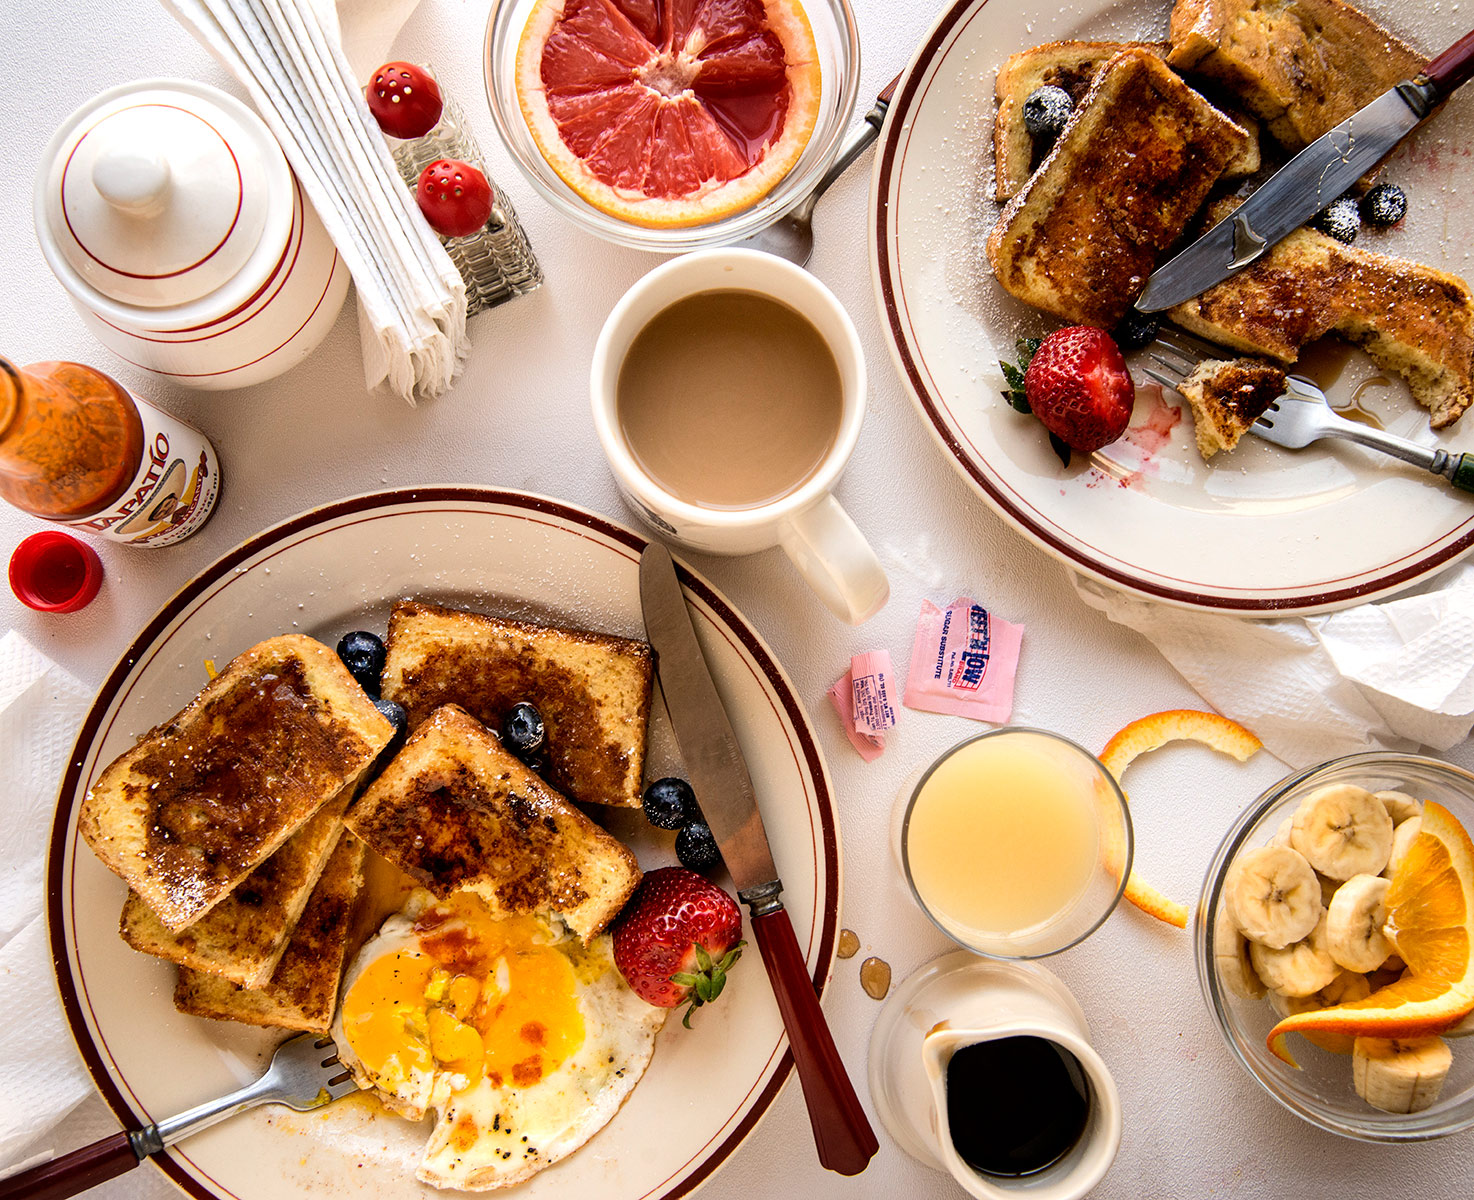 French Toast Breakast Table-Carl Kravats Food Photography